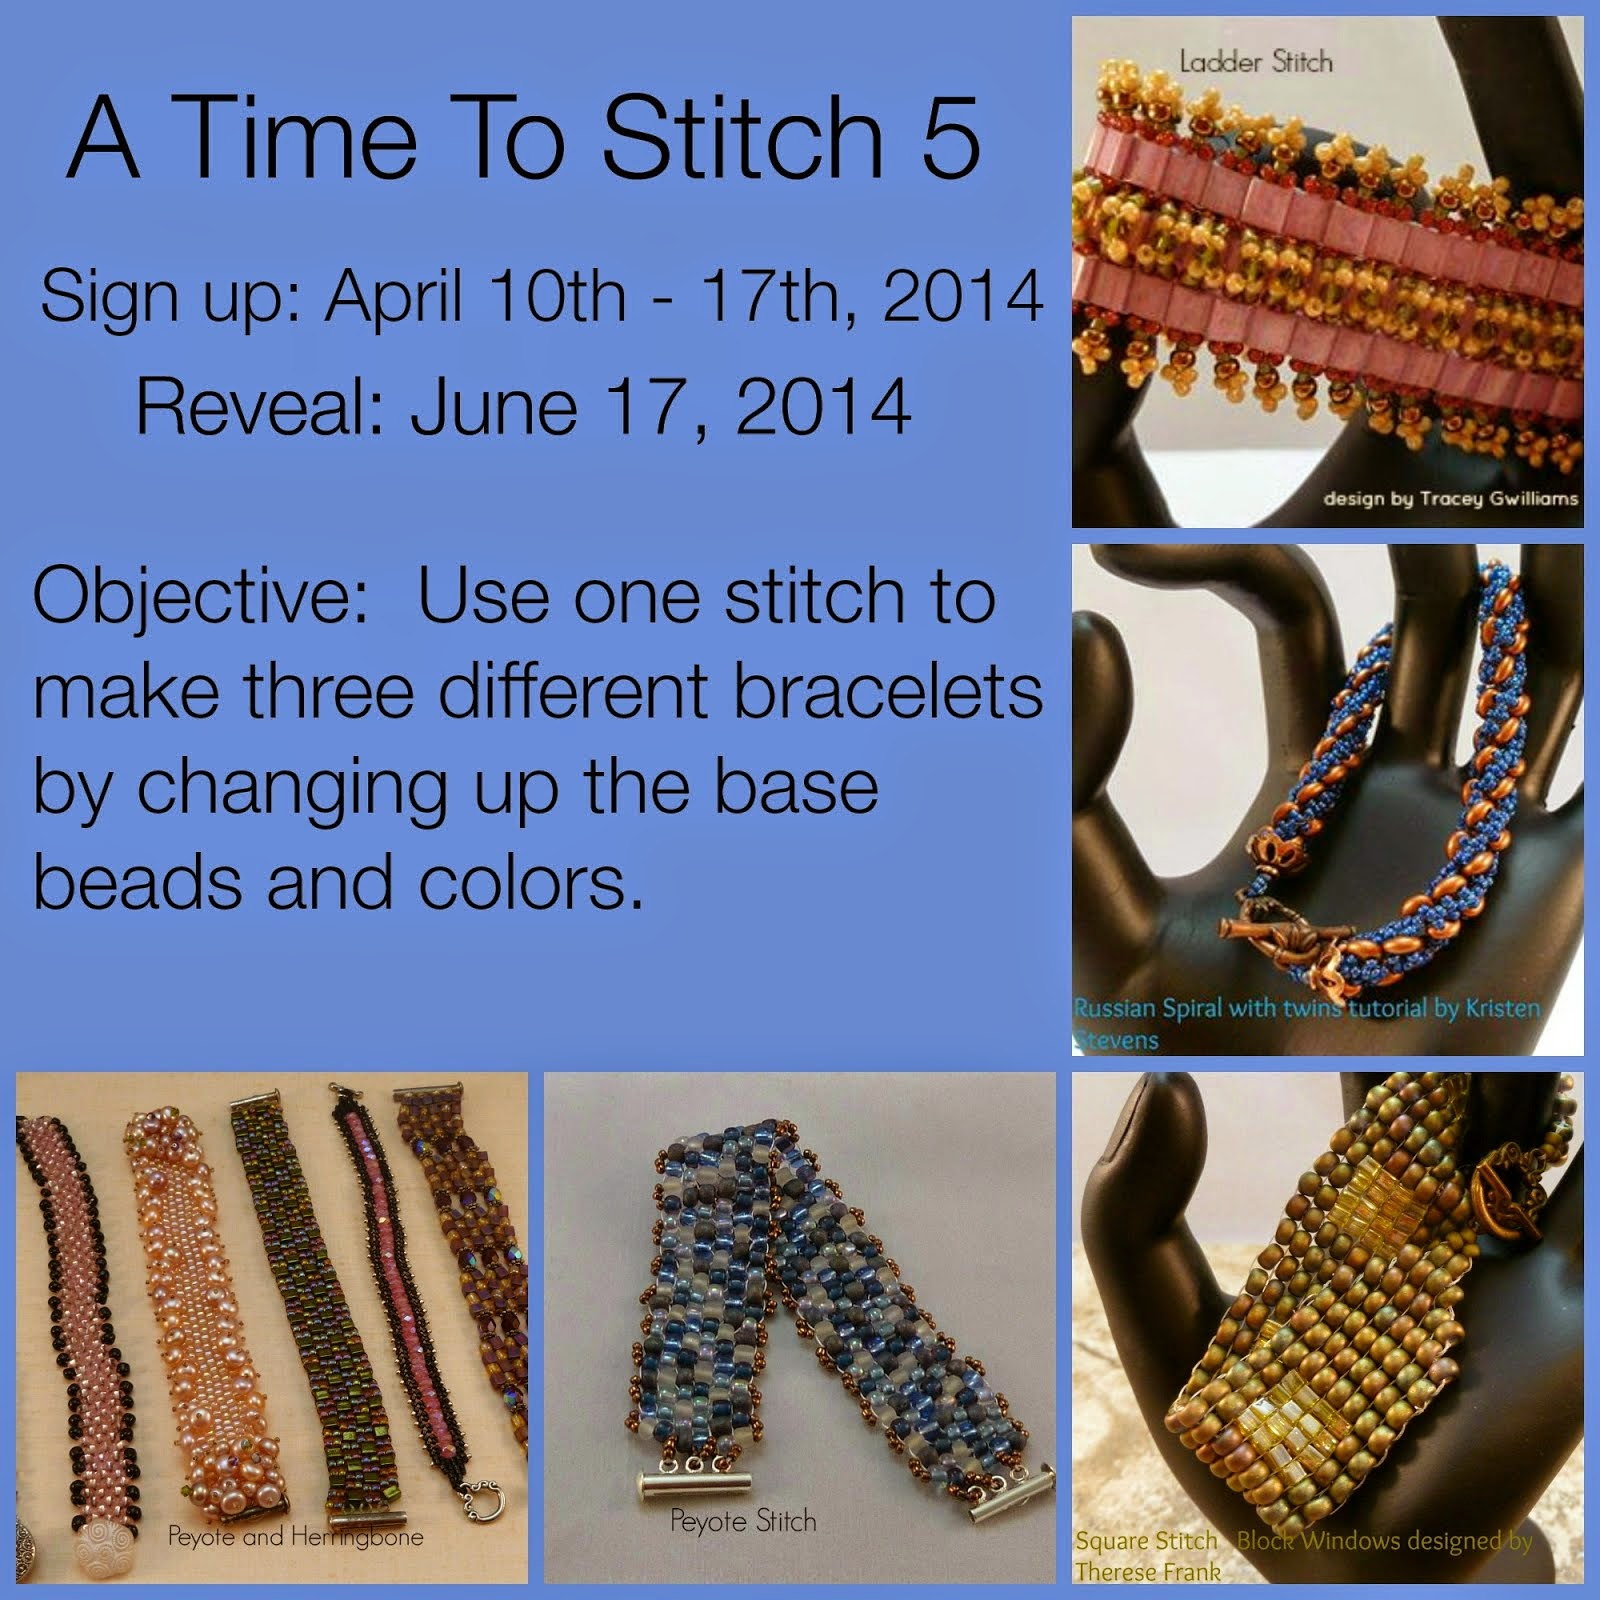 A Time To Stitch 5